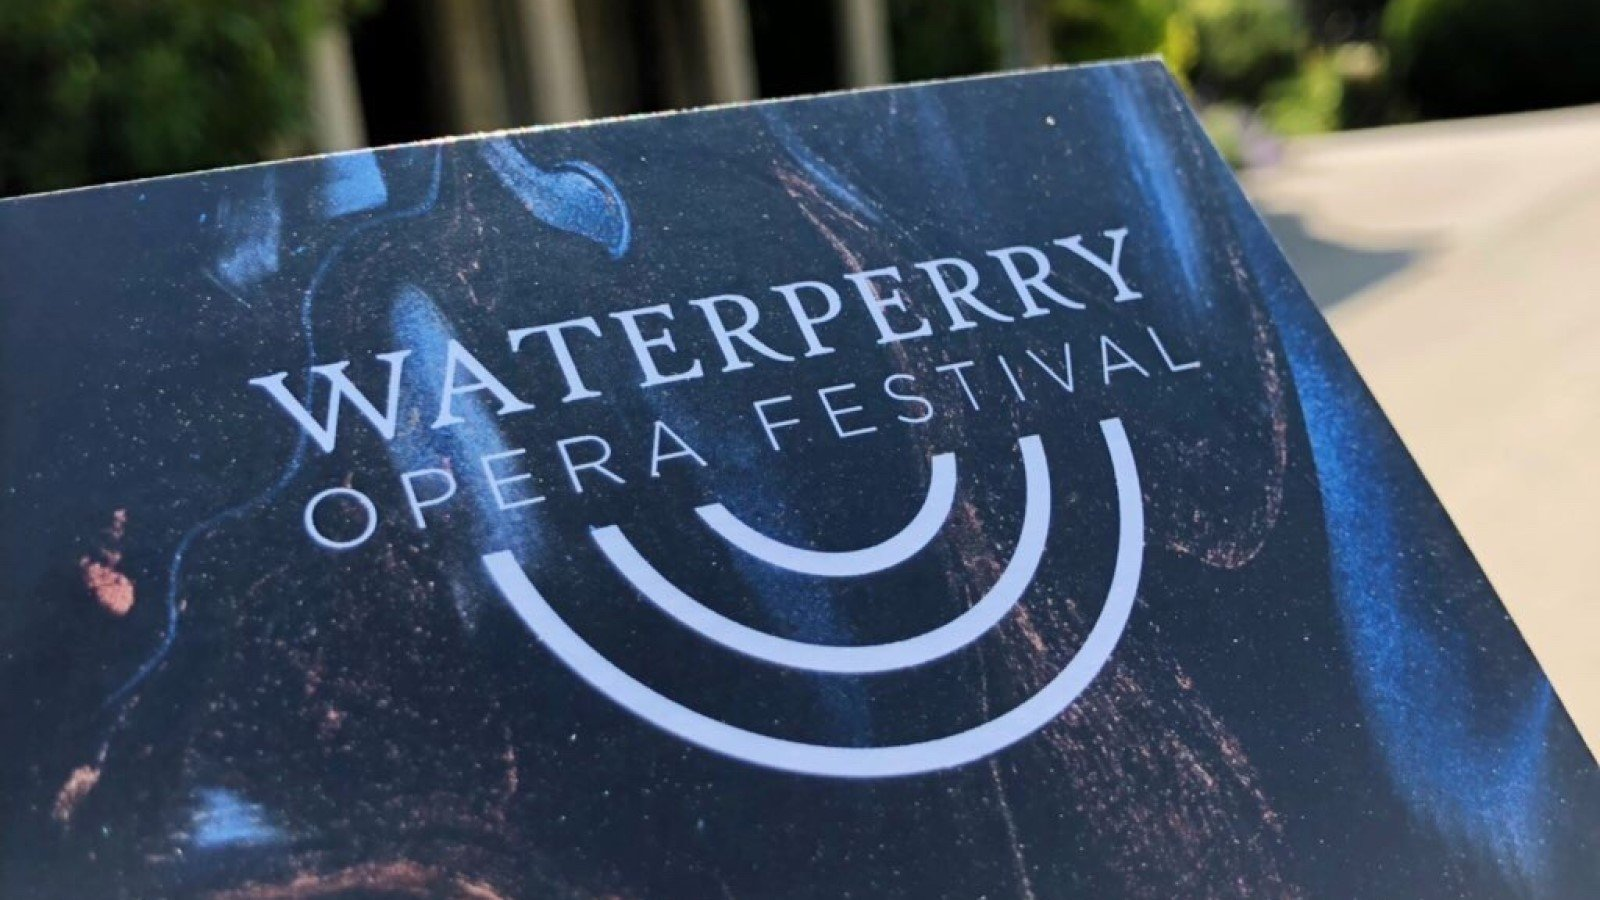 Waterperry Opera Festival 2021